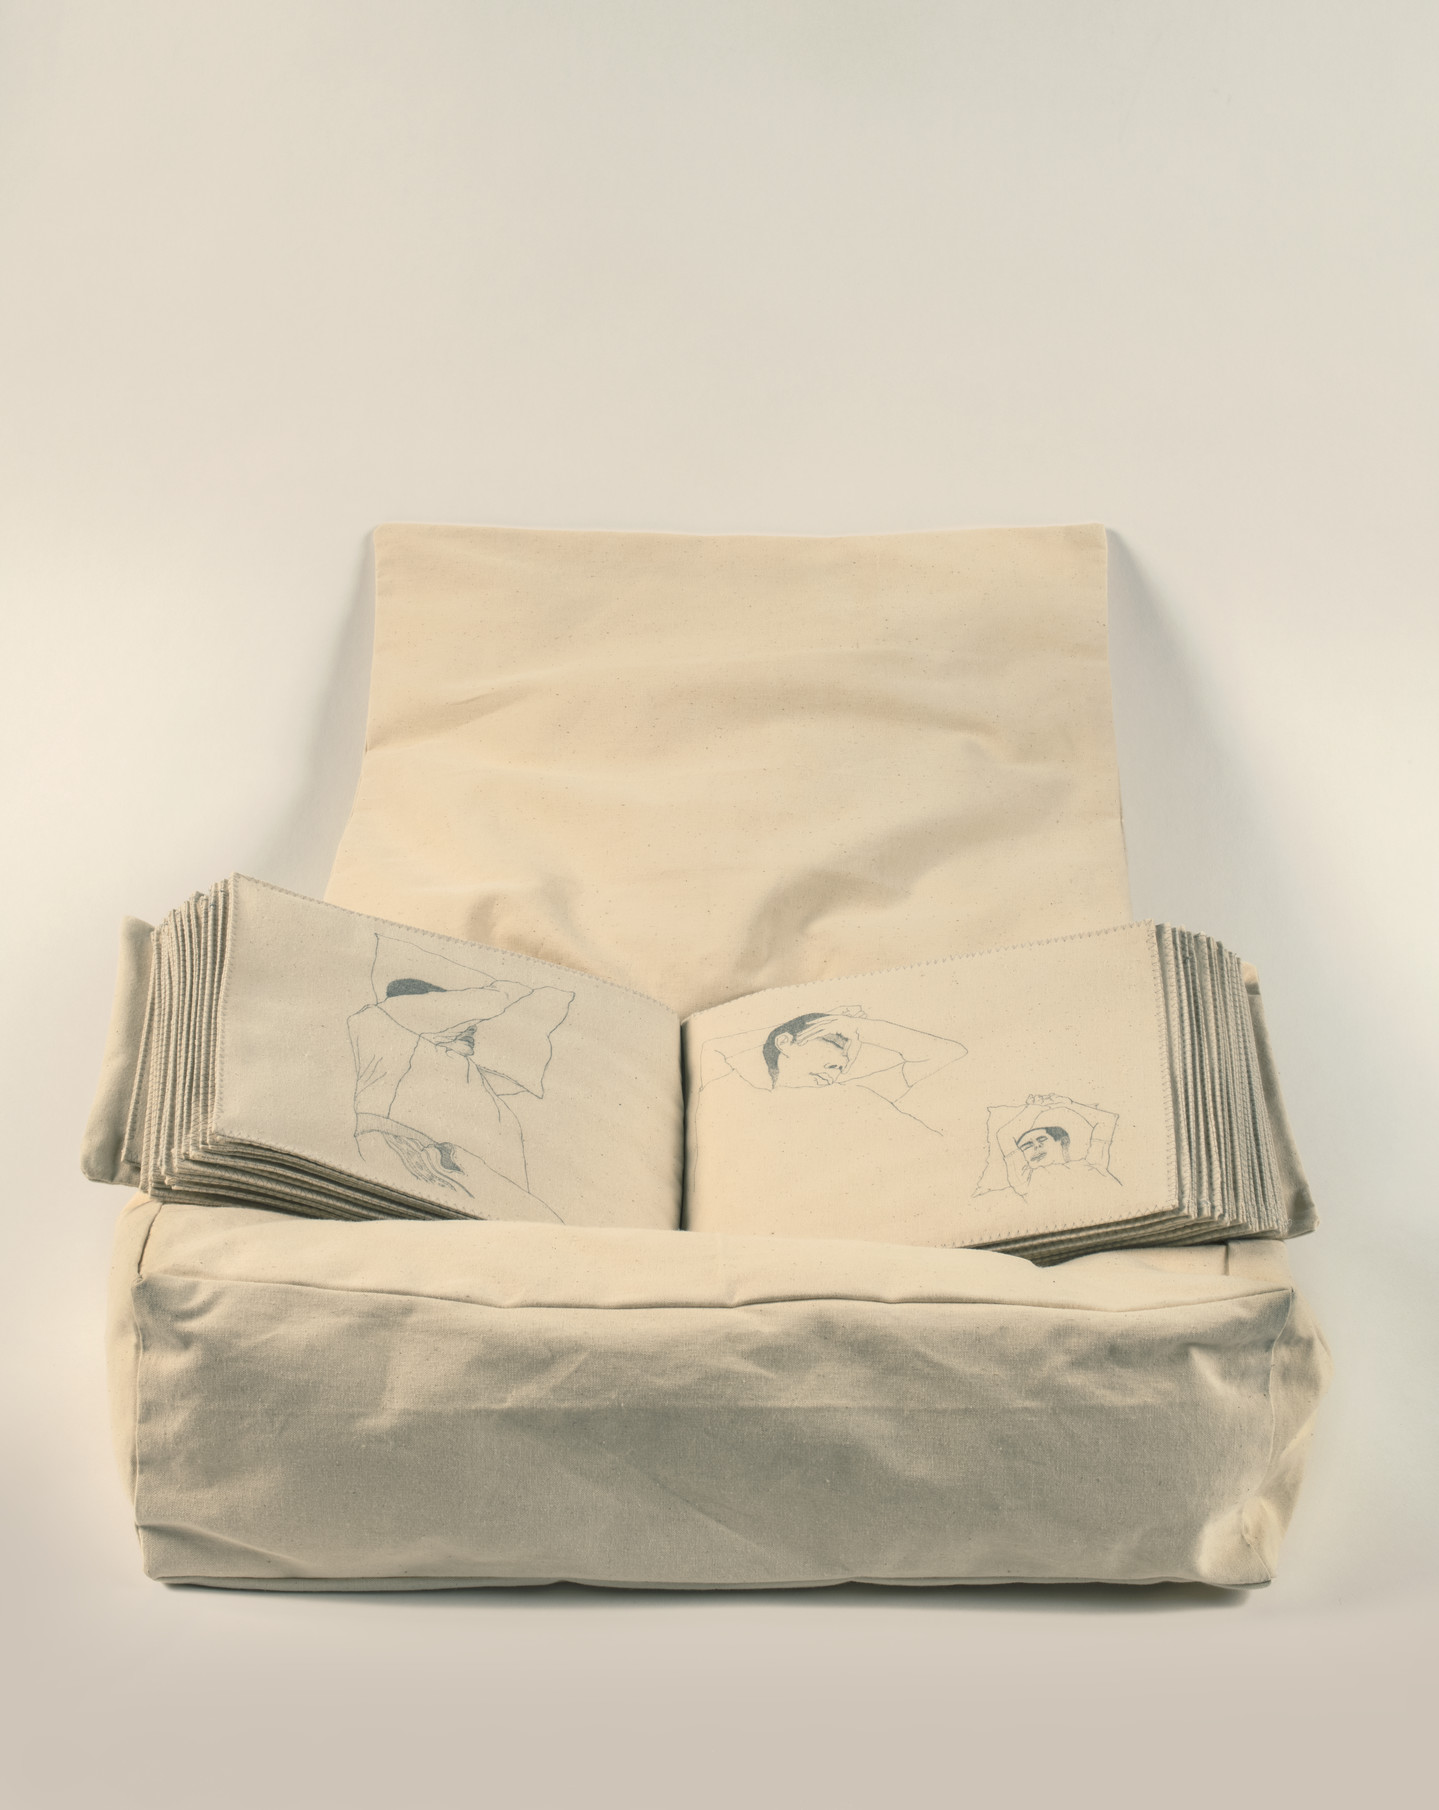 A stuffed, pillow-like box in beige holds an illustrated book with fabric pages. Three drawings of people sleeping fill the open book.